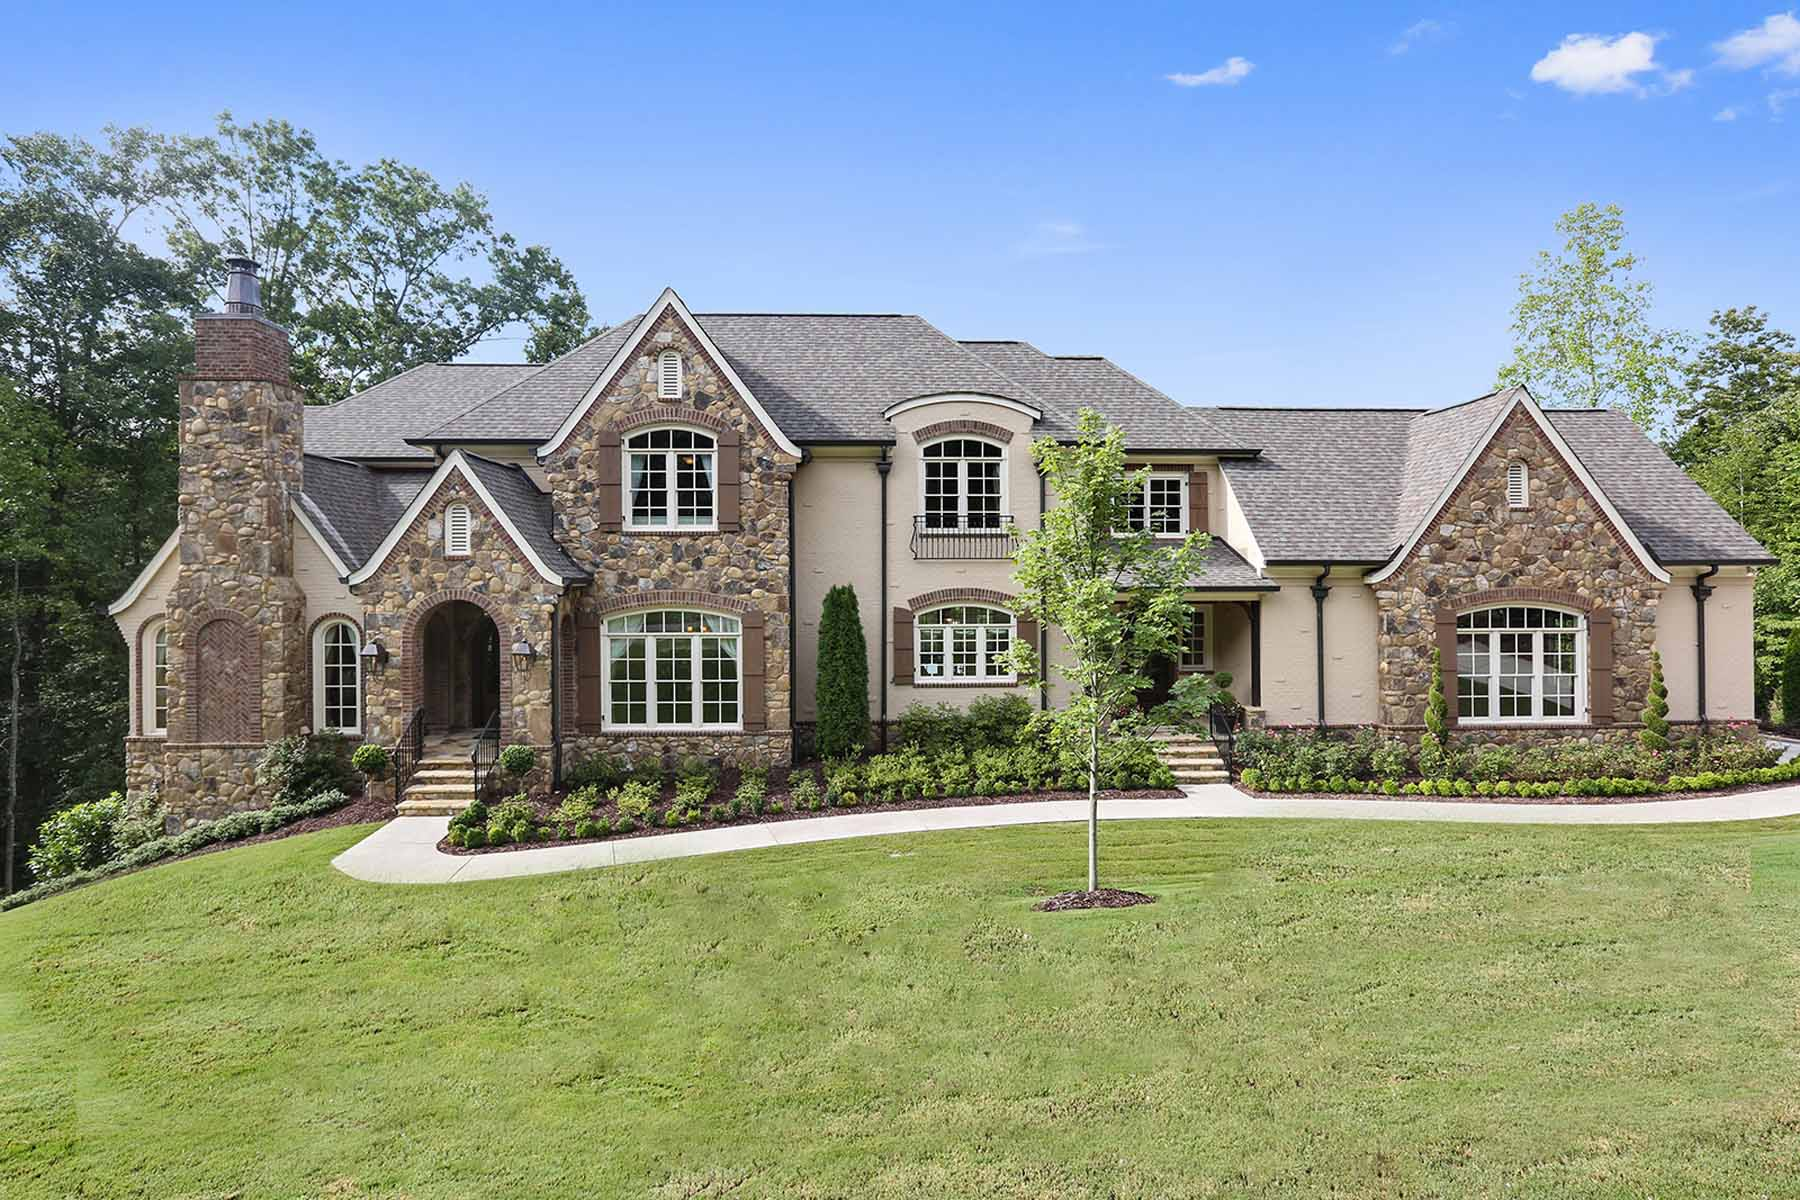 Single Family Home for Rent at Stately Home on Golf Course 271 Traditions Drive Alpharetta, Georgia 30004 United States